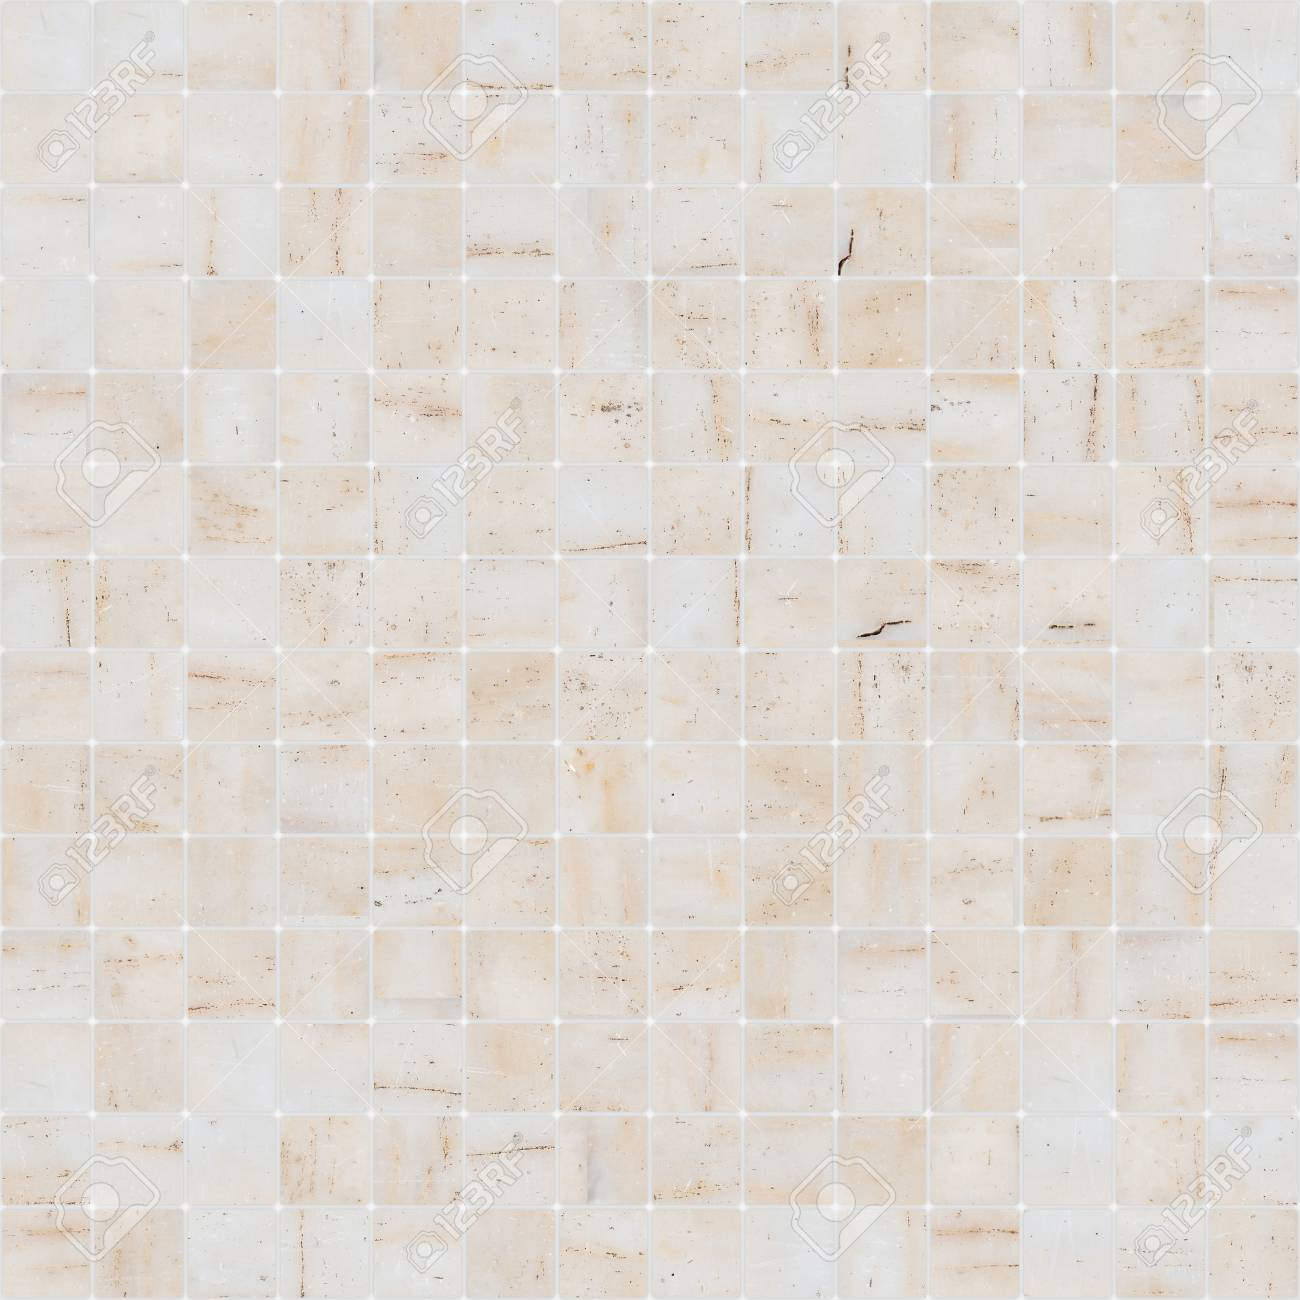 Yellow White Mosaic Marble Tile Texture Seamless Stock Photo Picture And Royalty Free Image Image 70854399